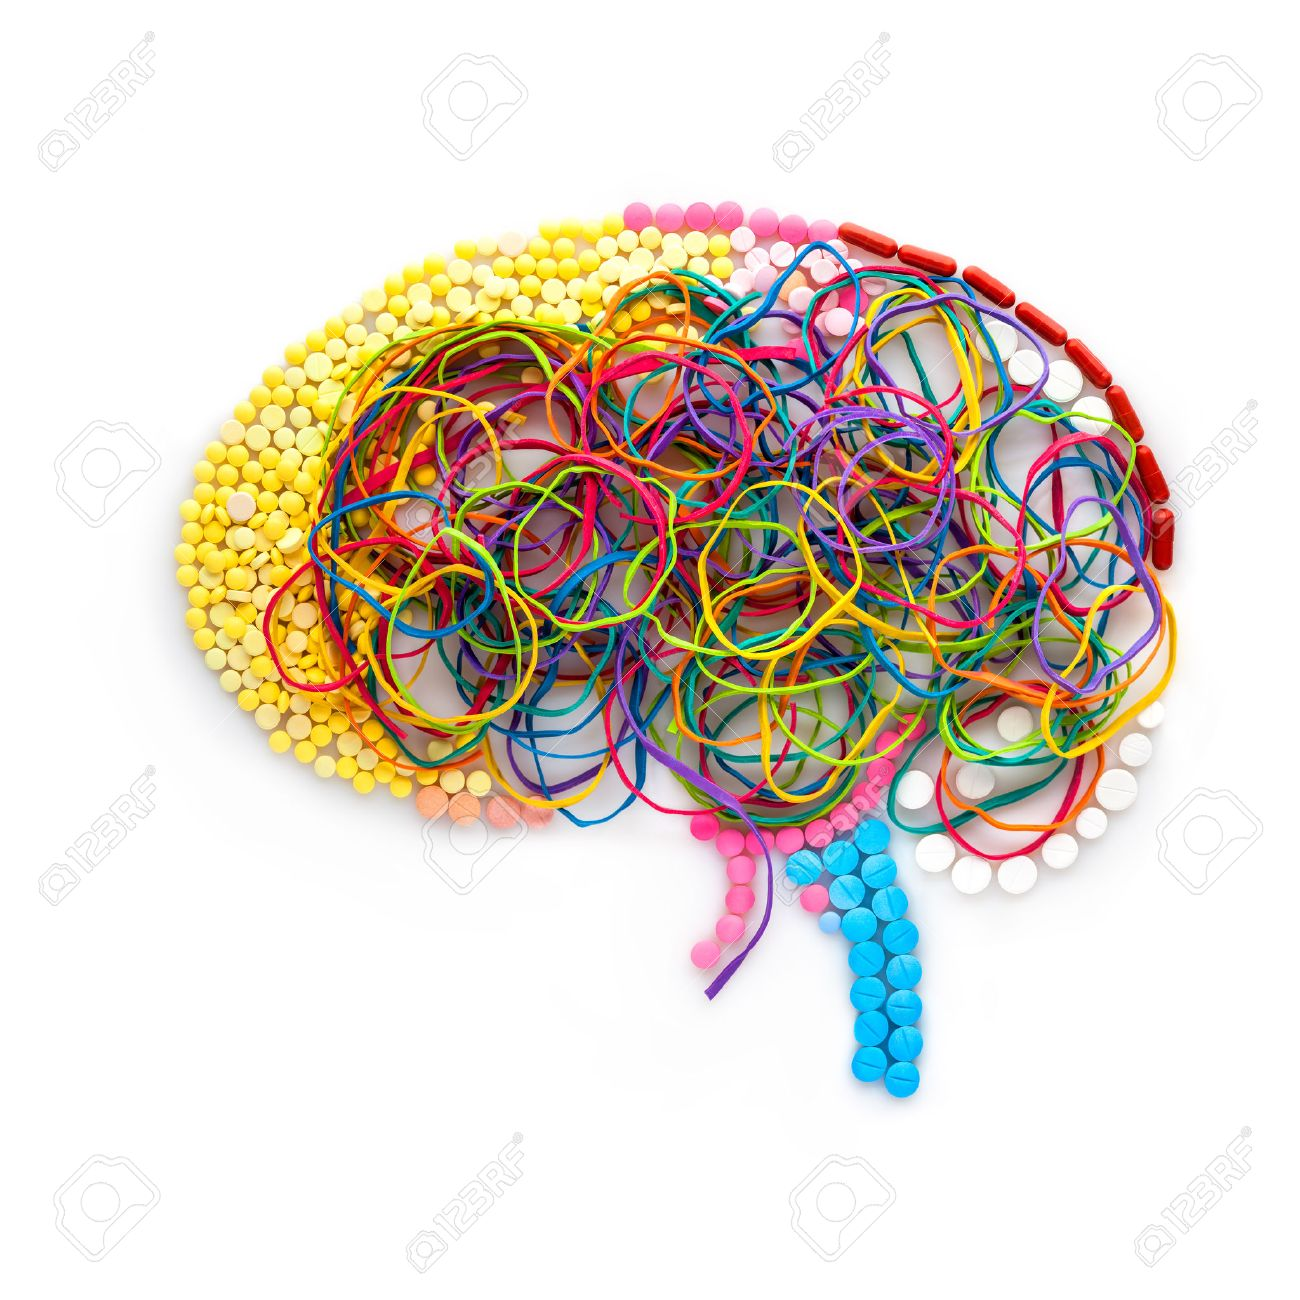 Creative Concept Of A Human Brain Made Of Drugs Pills And Colorful